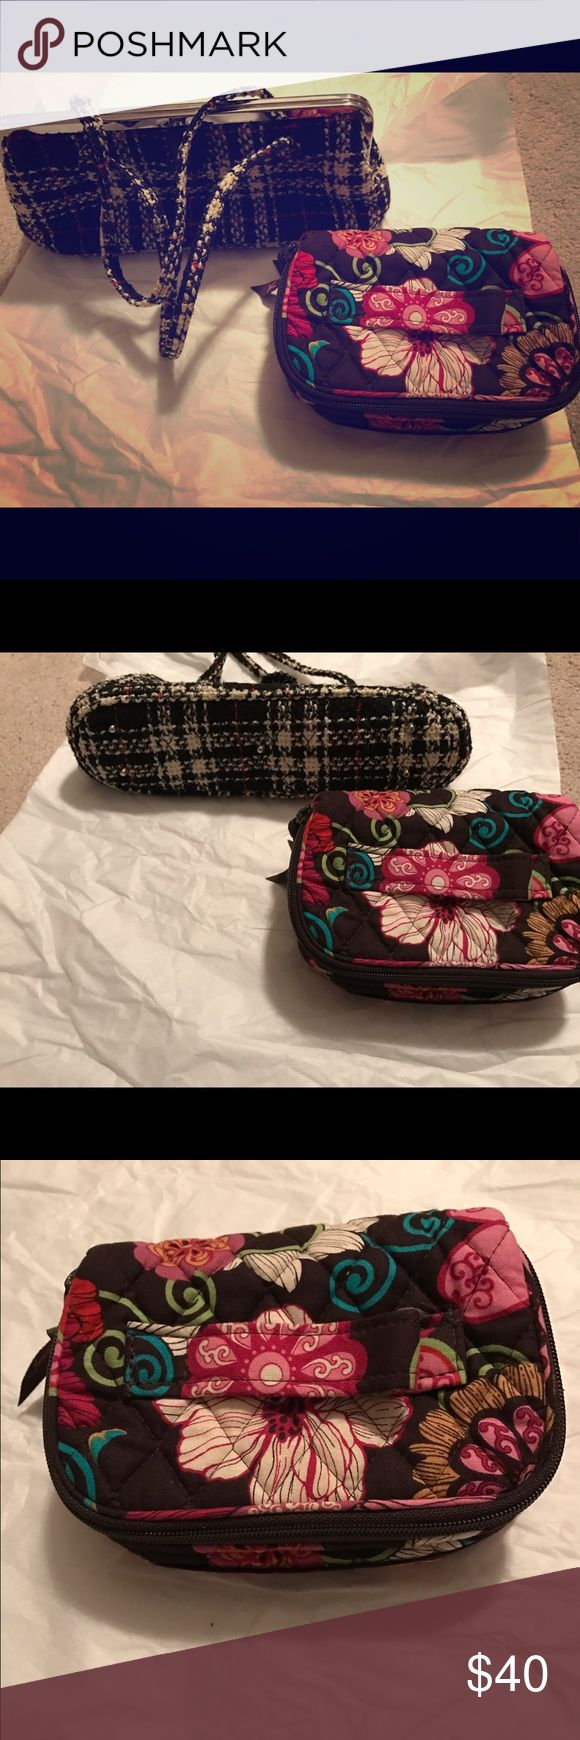 Two piece authentic Vera Bradley set! Authentic Vera Bradley small black and white fabric kiss closure clutch and floral zip around jewelry bag. Jewelry bag has two pull out zipper pockets and two jewelry slots. Super cute Vera Bradley Bags